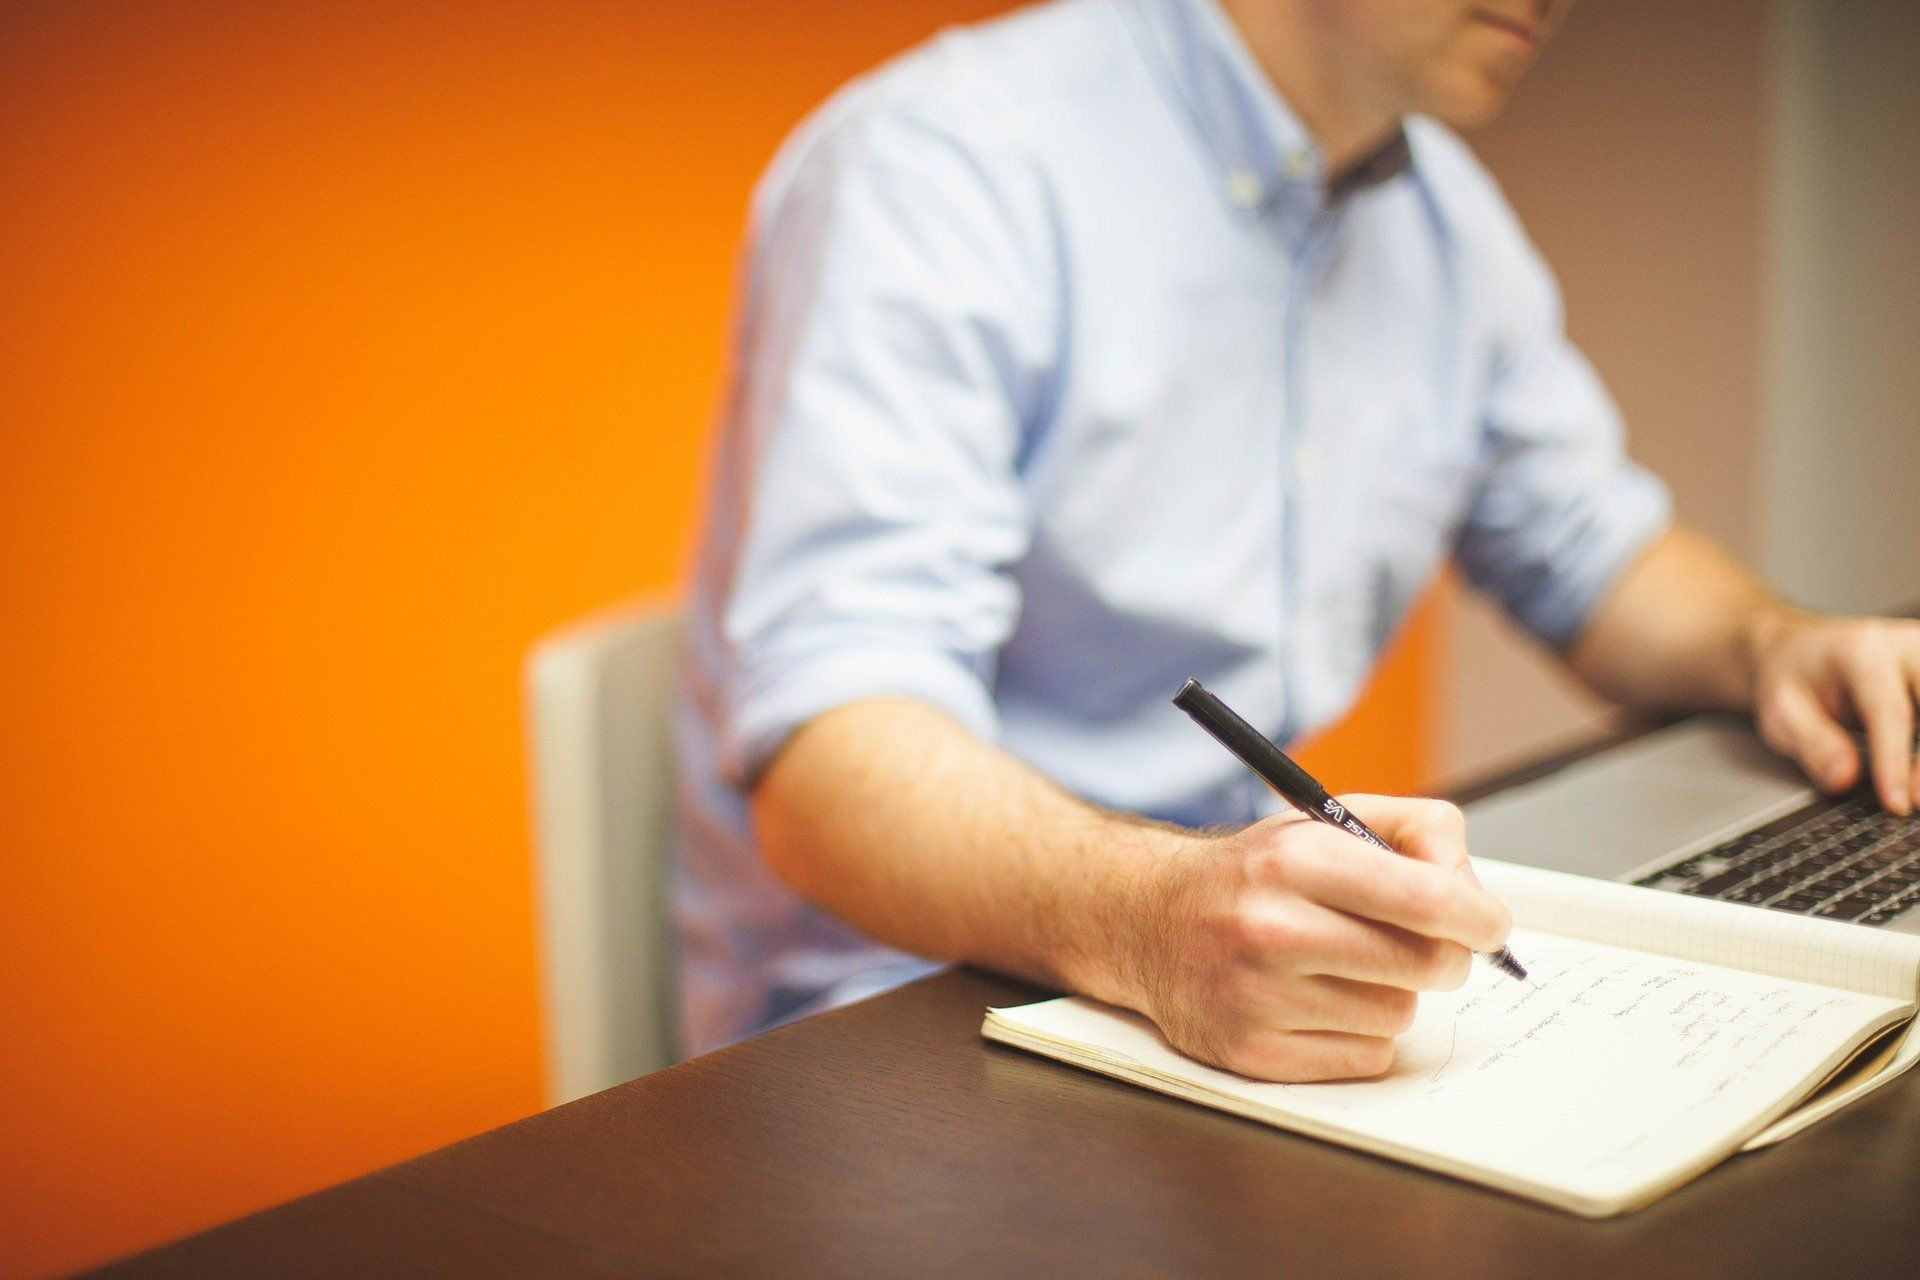 Man writing on paper on a desk; employee development